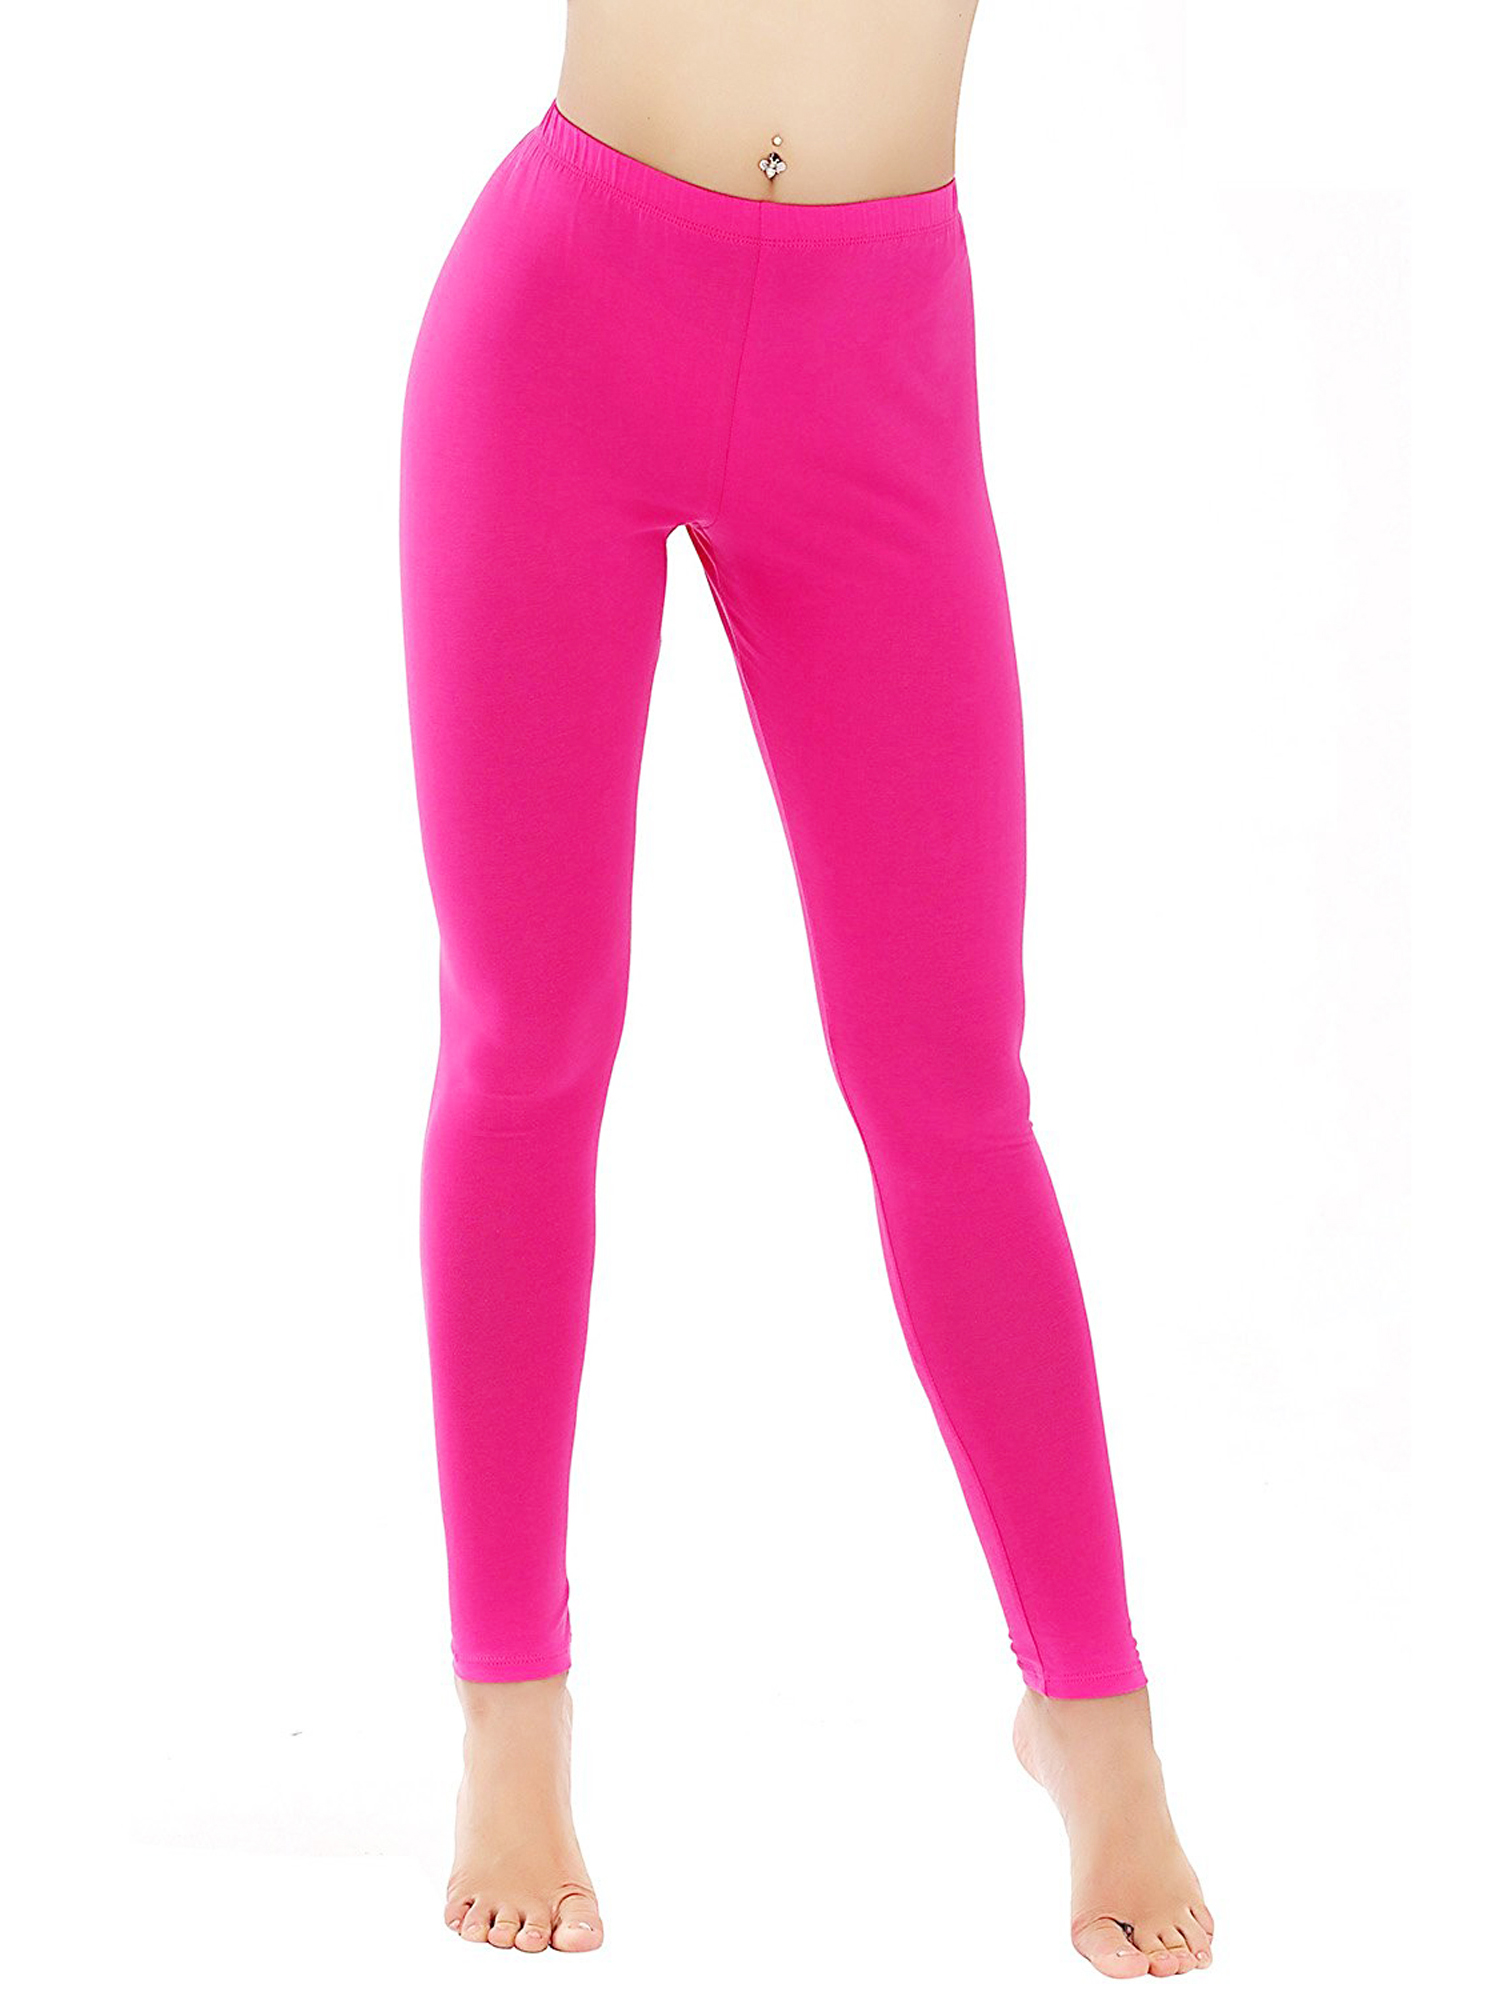 SAYFUT Womens Juniors' Stretch Leggings Fluorescent Colors Tights Workout Gym Sports Yoga Pants